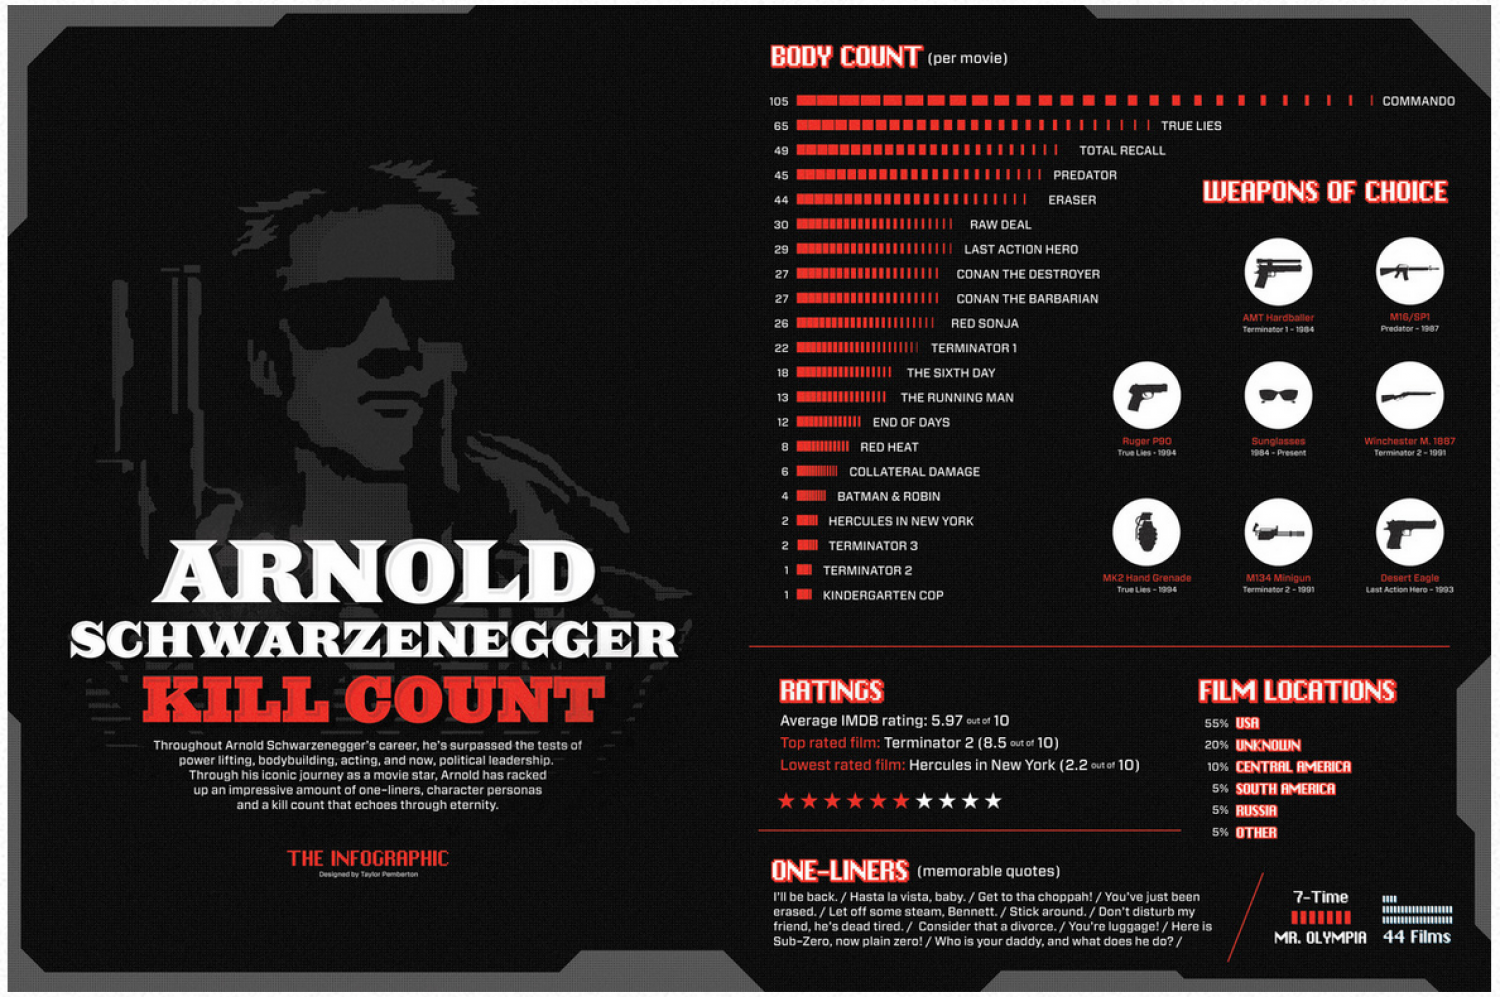 Arnold Schwarznegger Kill Count Infographic